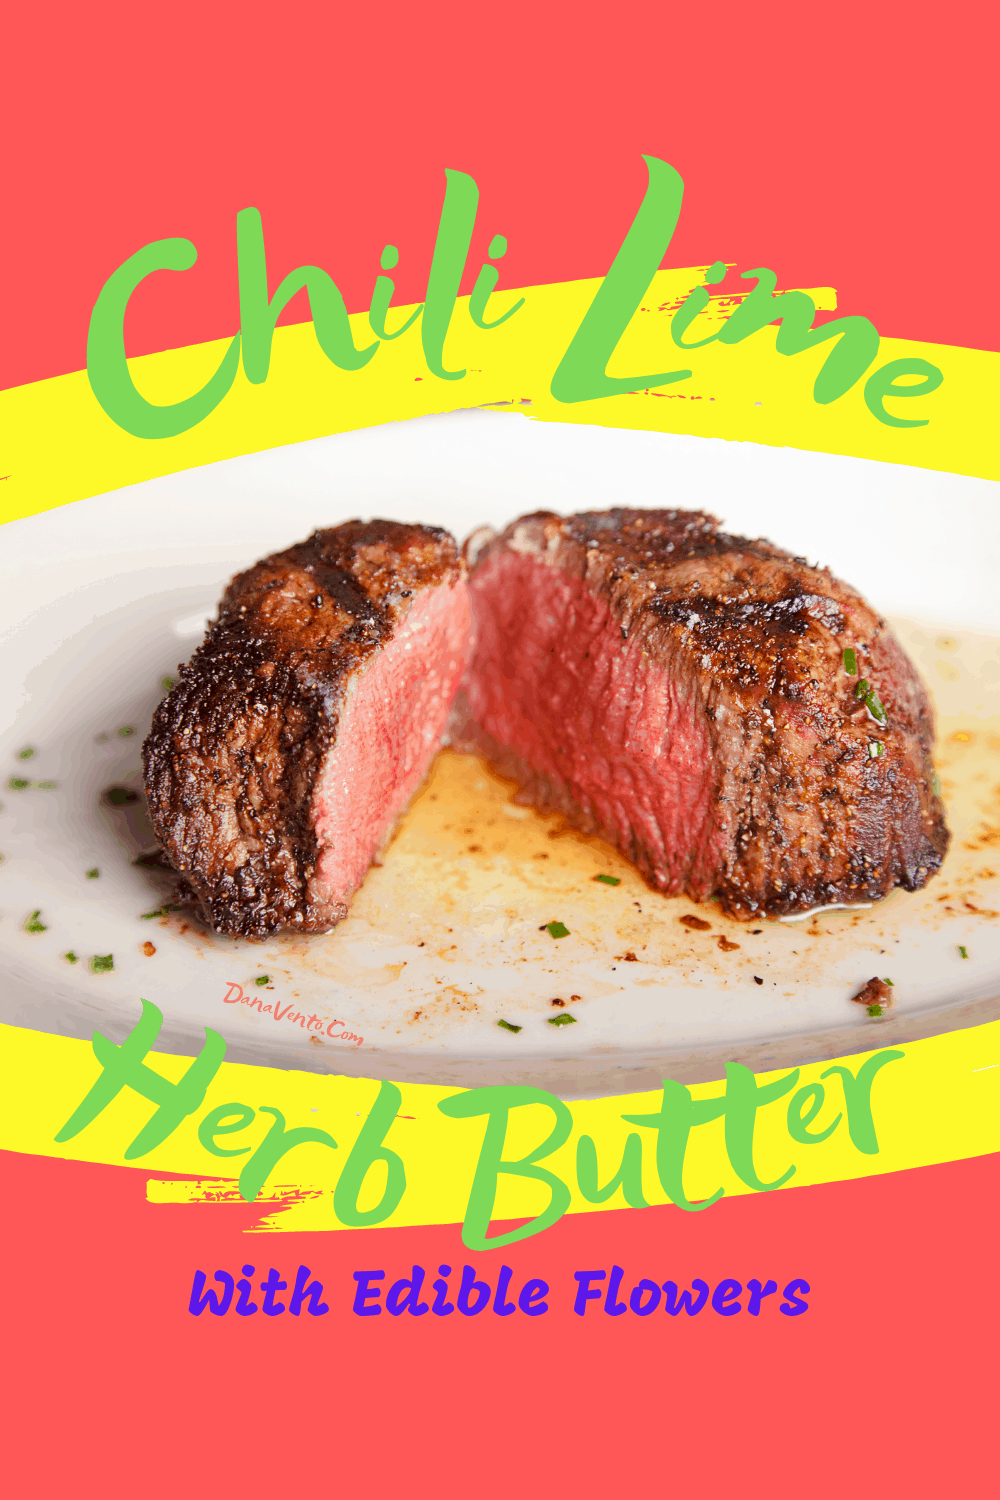 Chili Lime Herbed Butter with Edible Flowers steak on platter